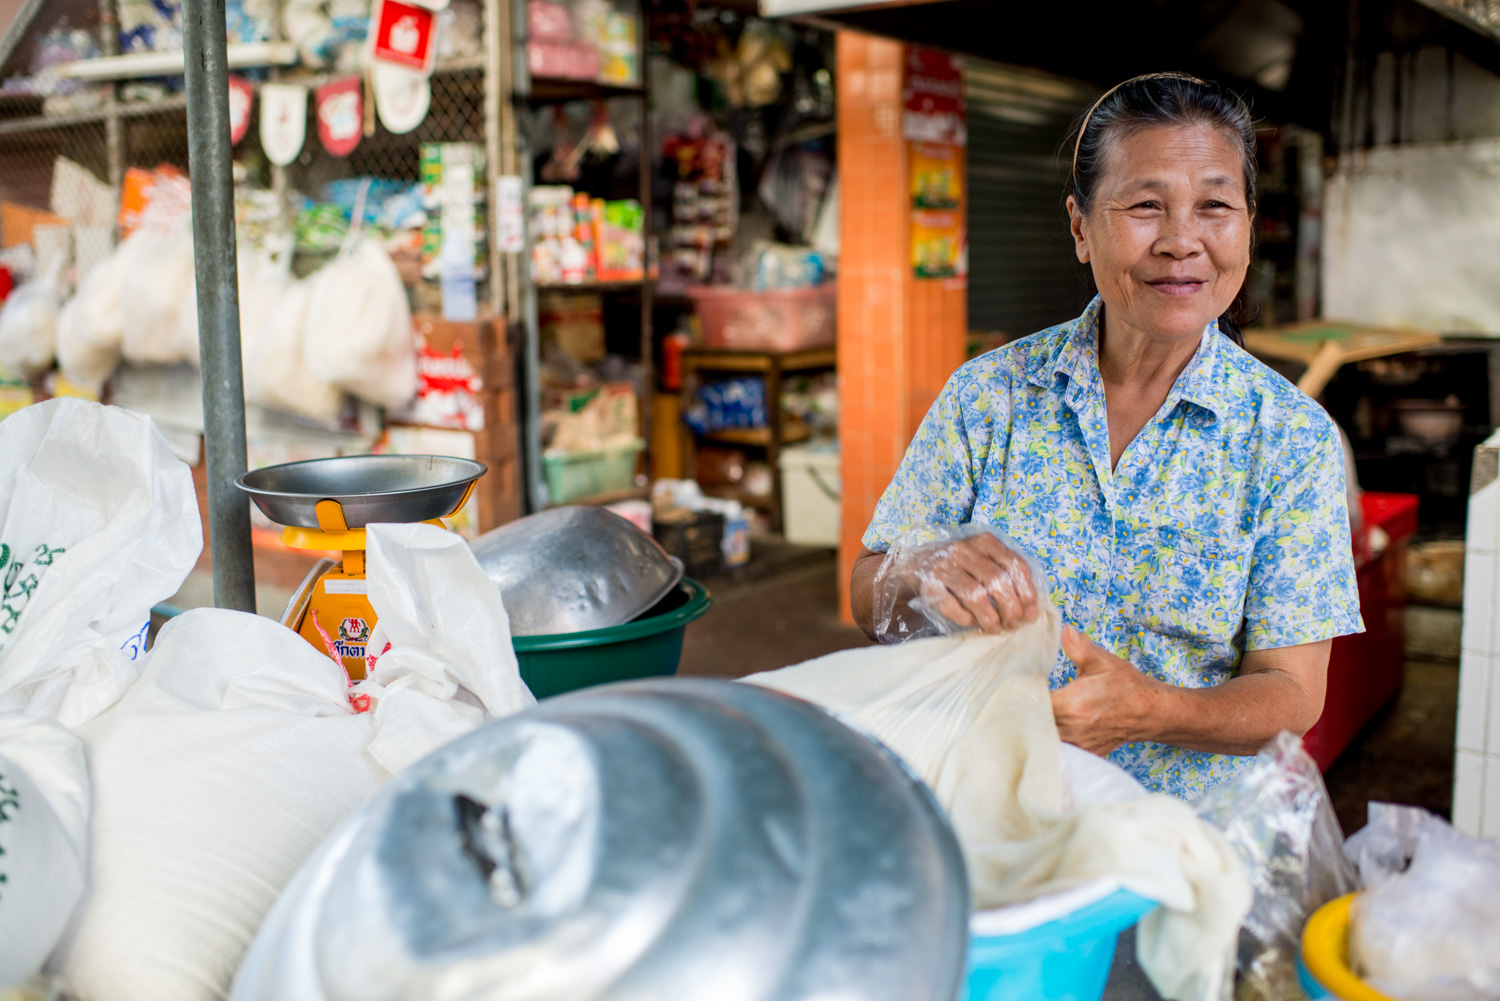 Sticky Rice Vendor - 8 Tips to Help Find the Subject for Your Composition